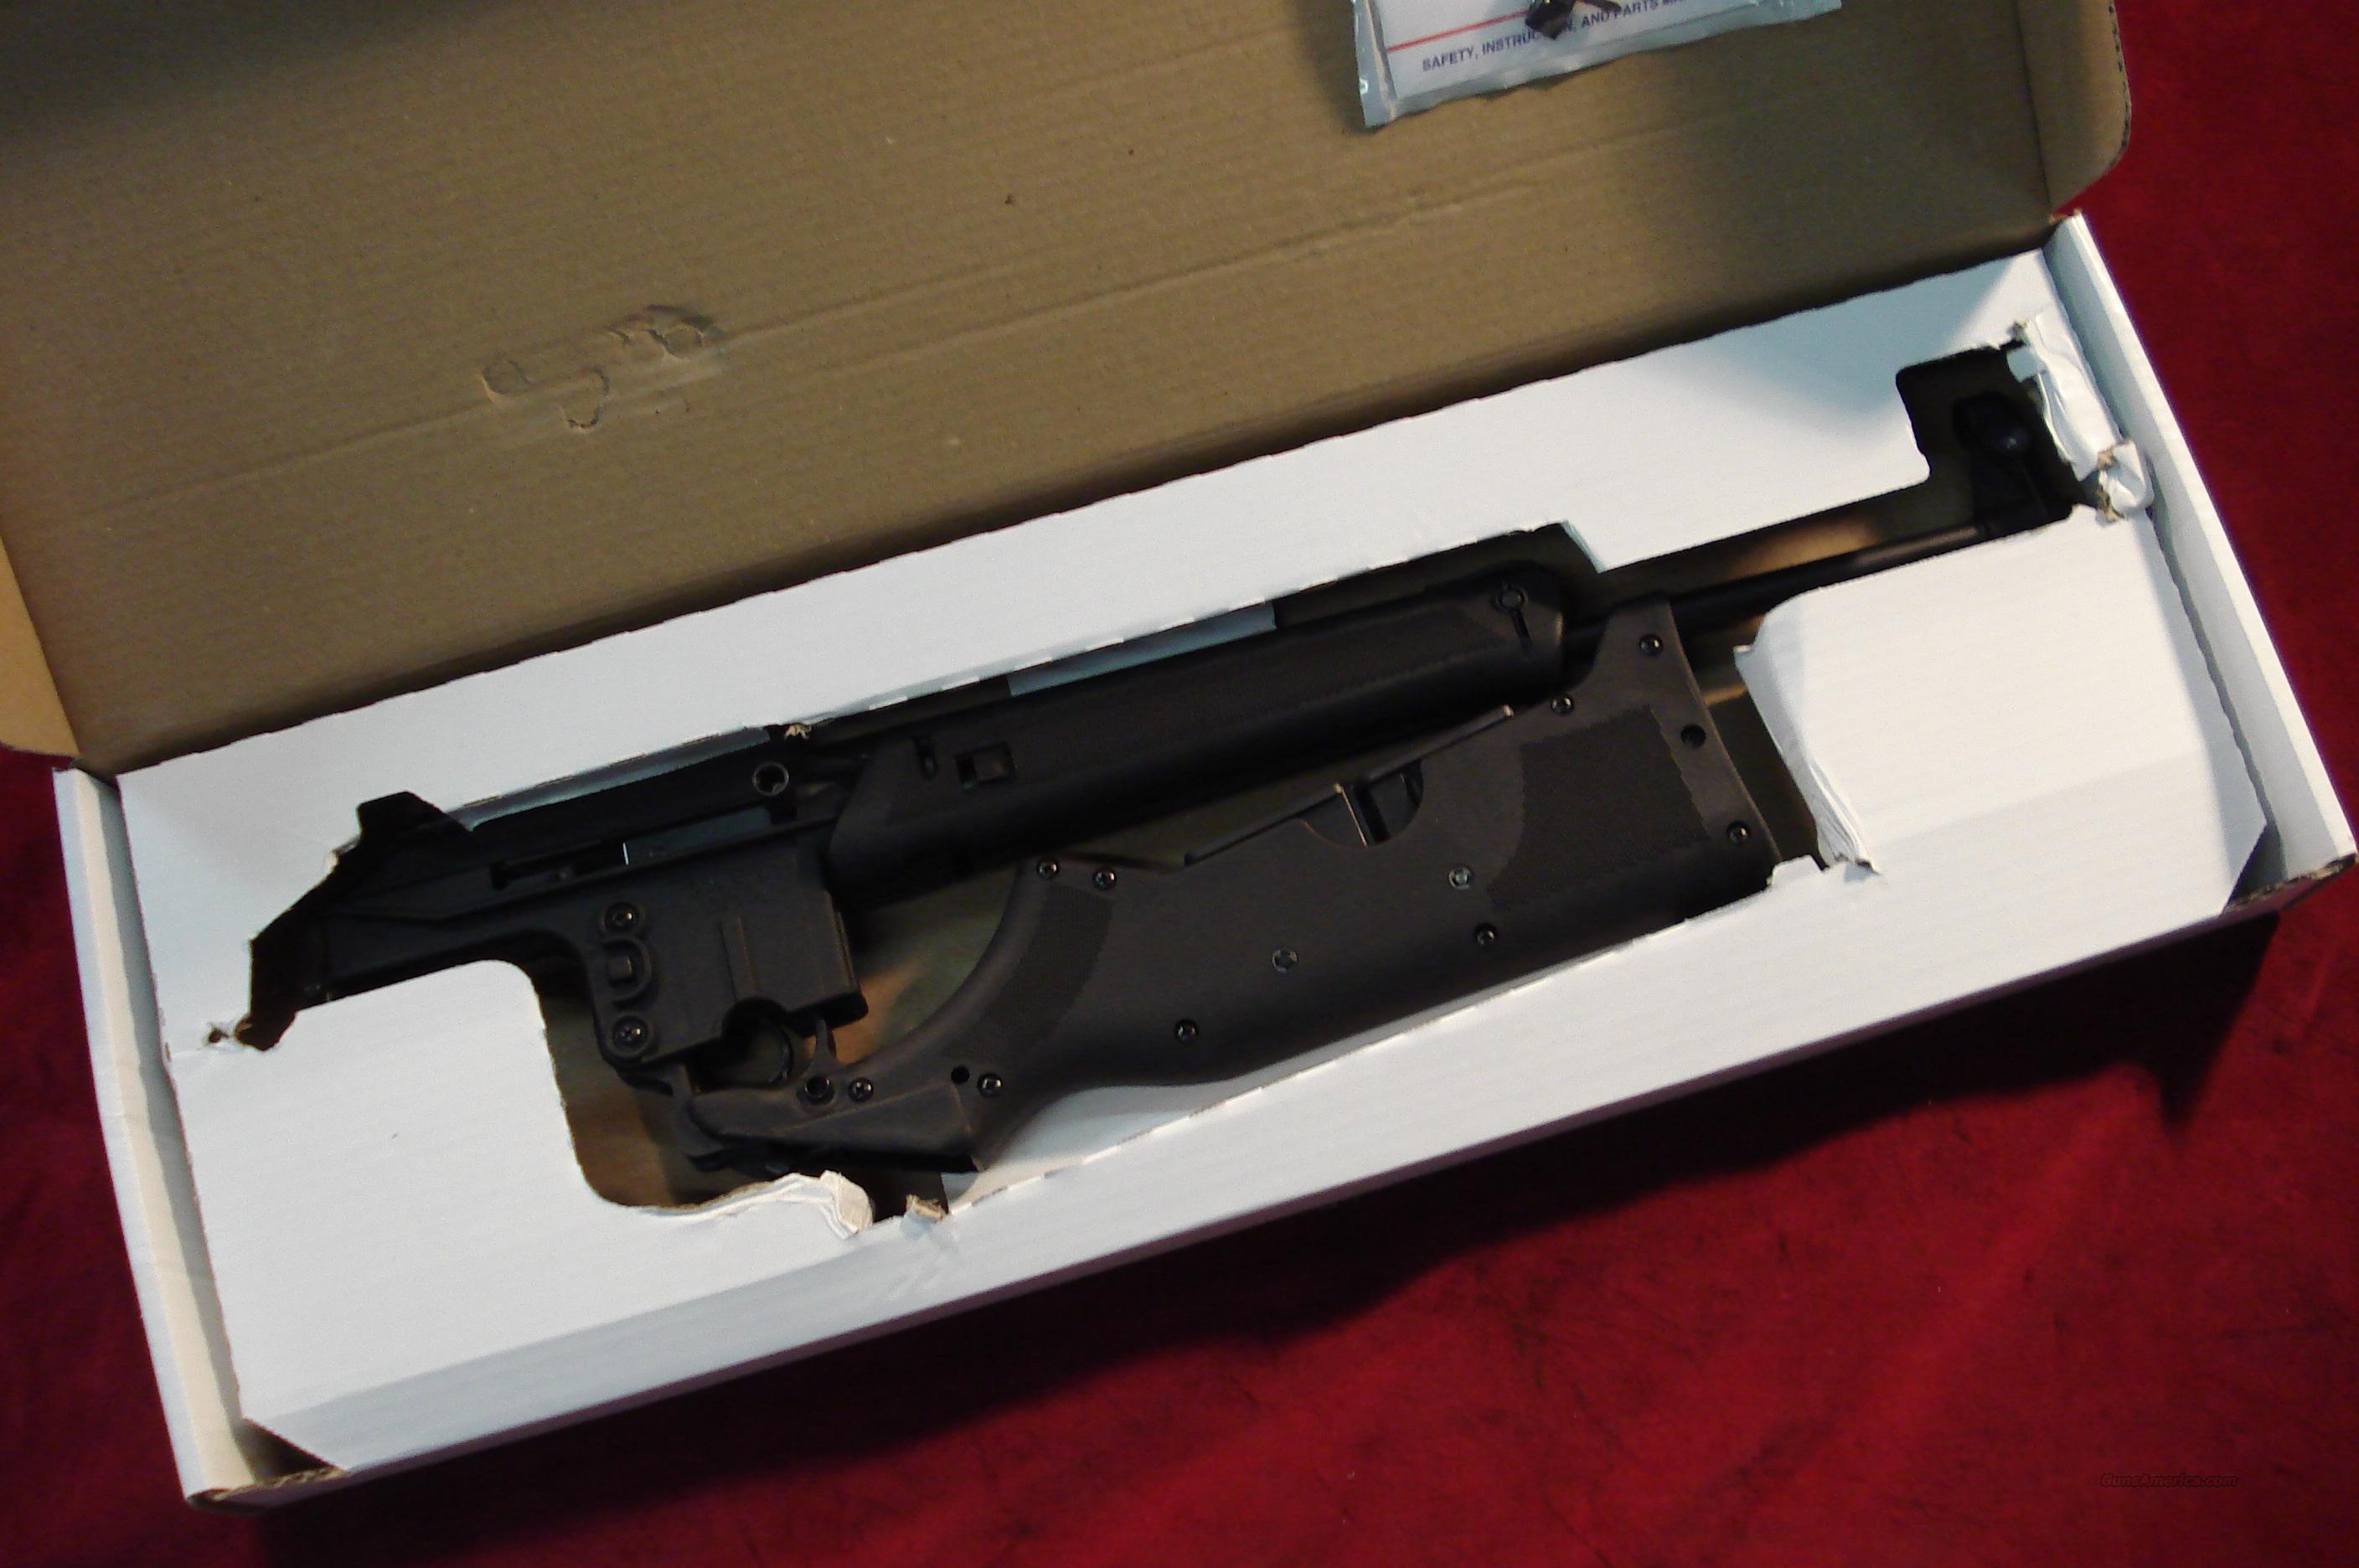 KEL-TEC SU-16A BLACK 5.56/223CAL. NEW   Guns > Rifles > Kel-Tec Rifles